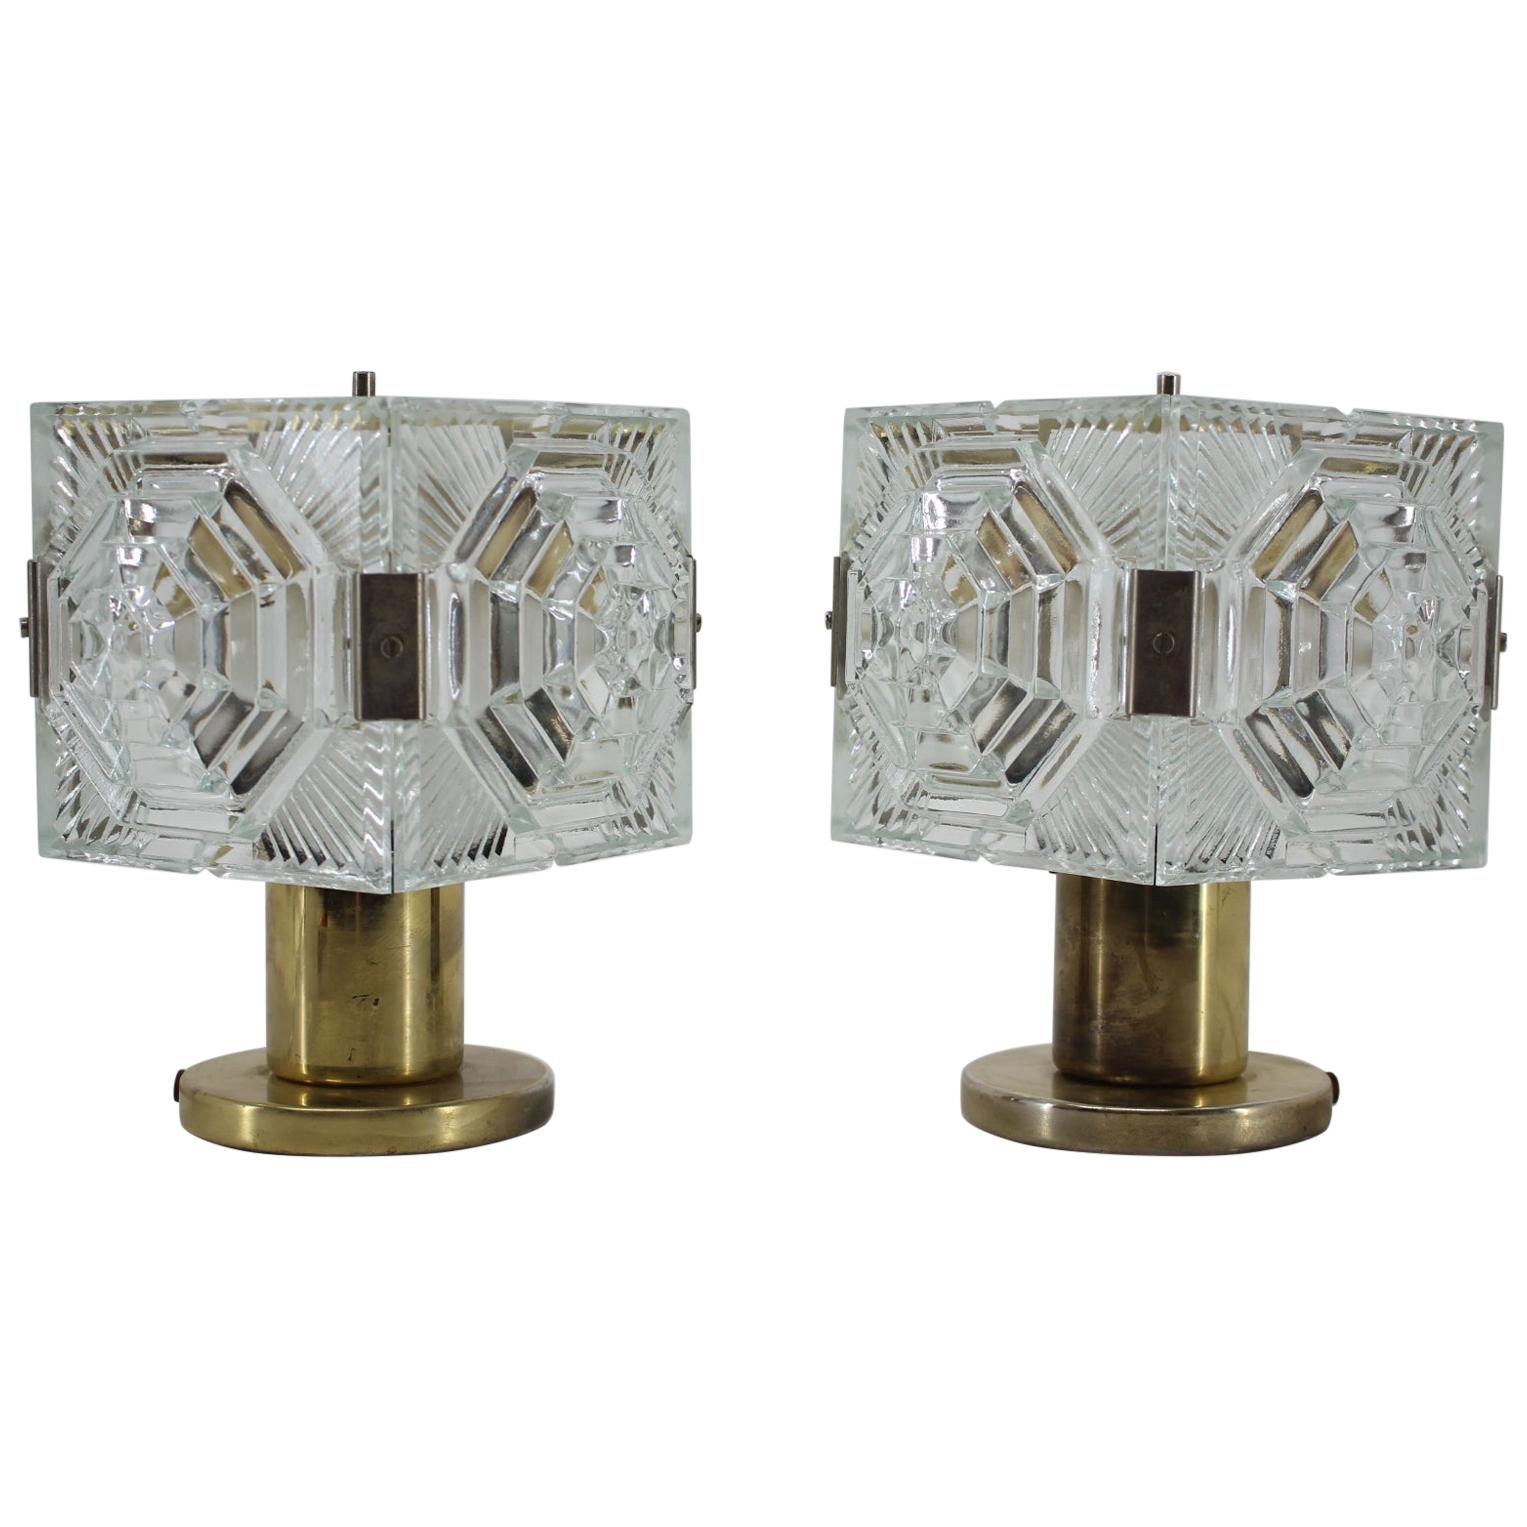 Pair of Midcentury Glass Design Table Lamps, 1970s